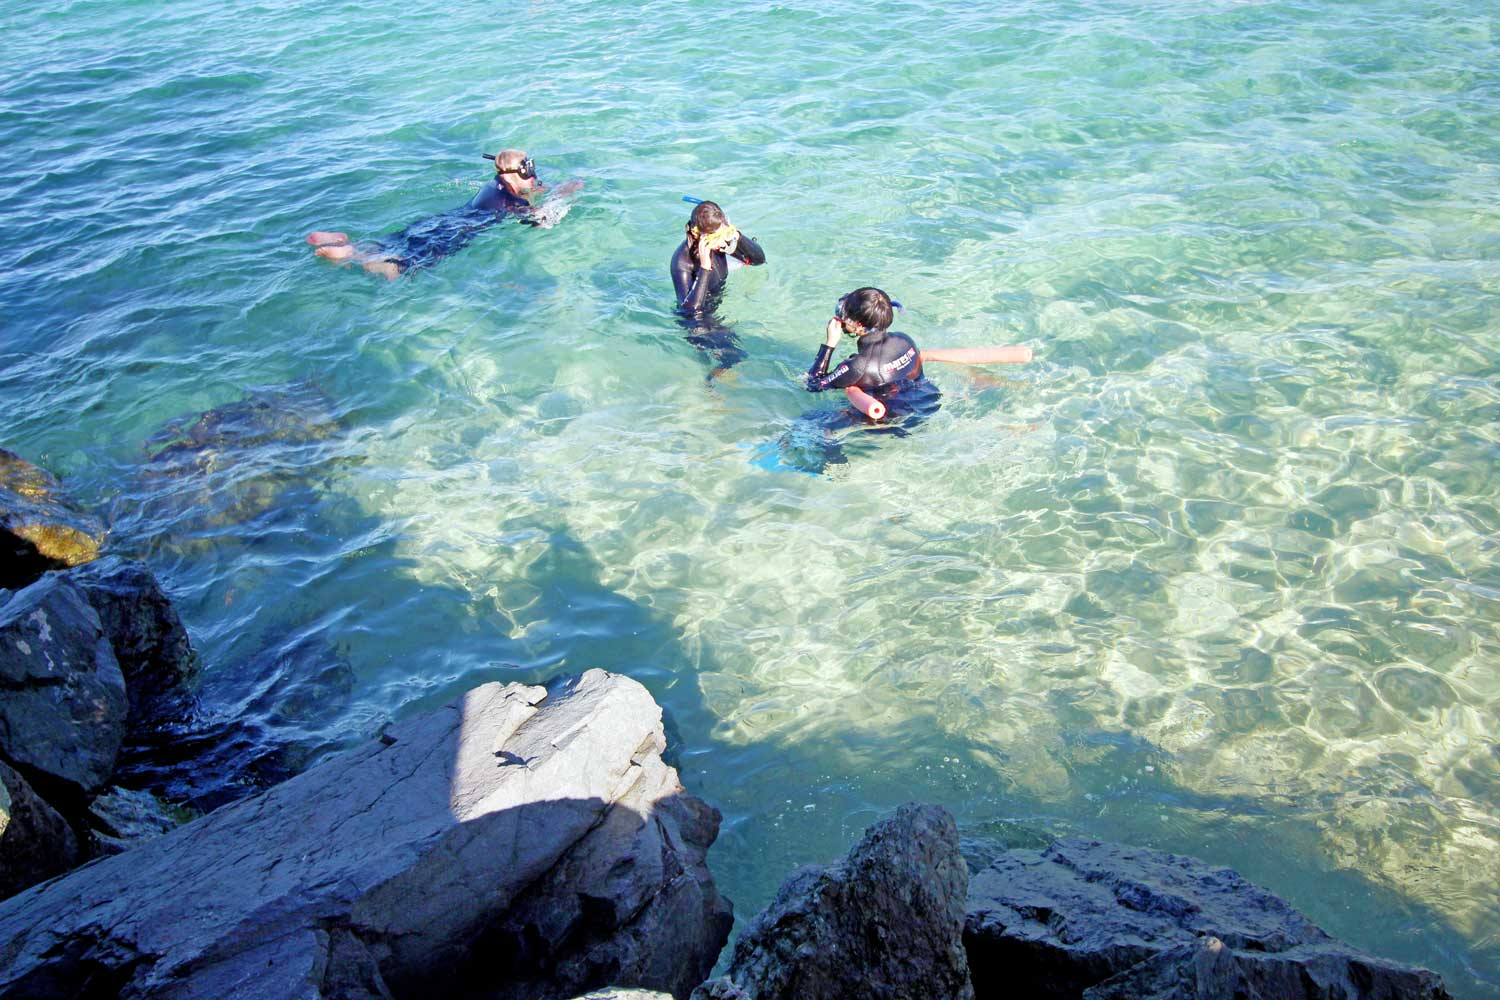 Three people snorkeling near rocks